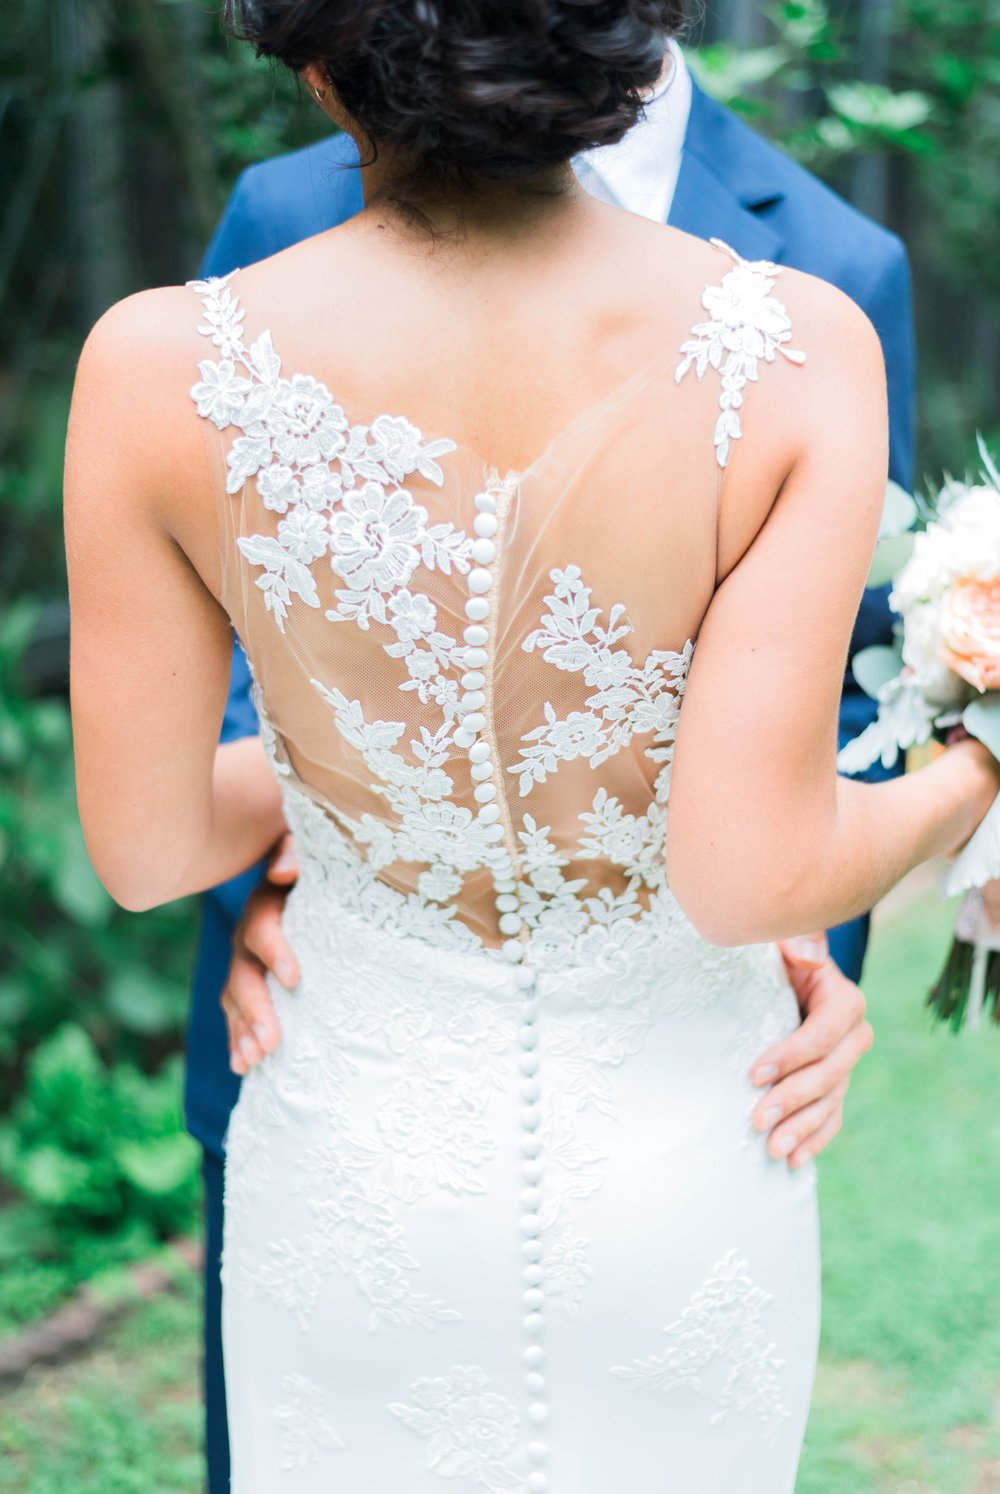 Williamsburgvawedding_backyardwedding_virginiaweddingphotographer_lynchburgweddingphotographer_PaulAliya 30.jpg